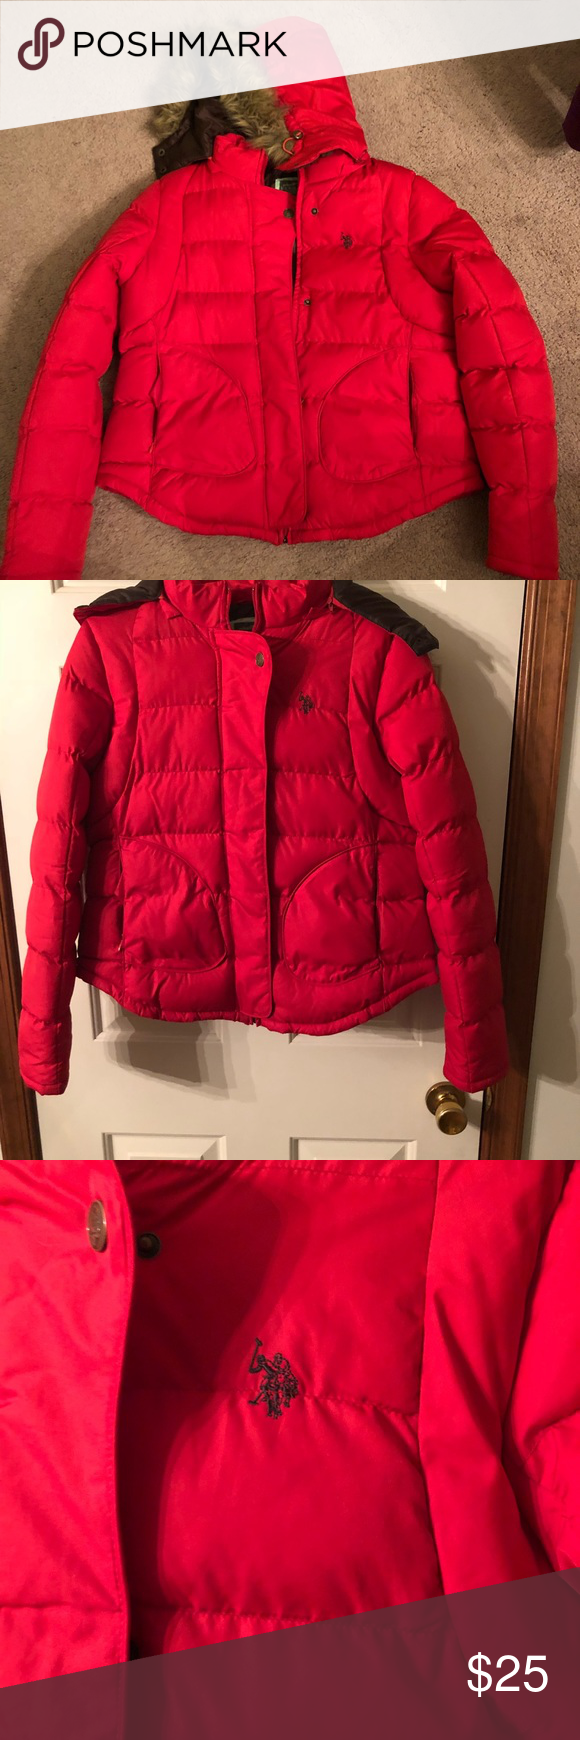 Red U S Polo Winter Coat Clothes Design Winter Coat Red Leather Jacket [ 1740 x 580 Pixel ]